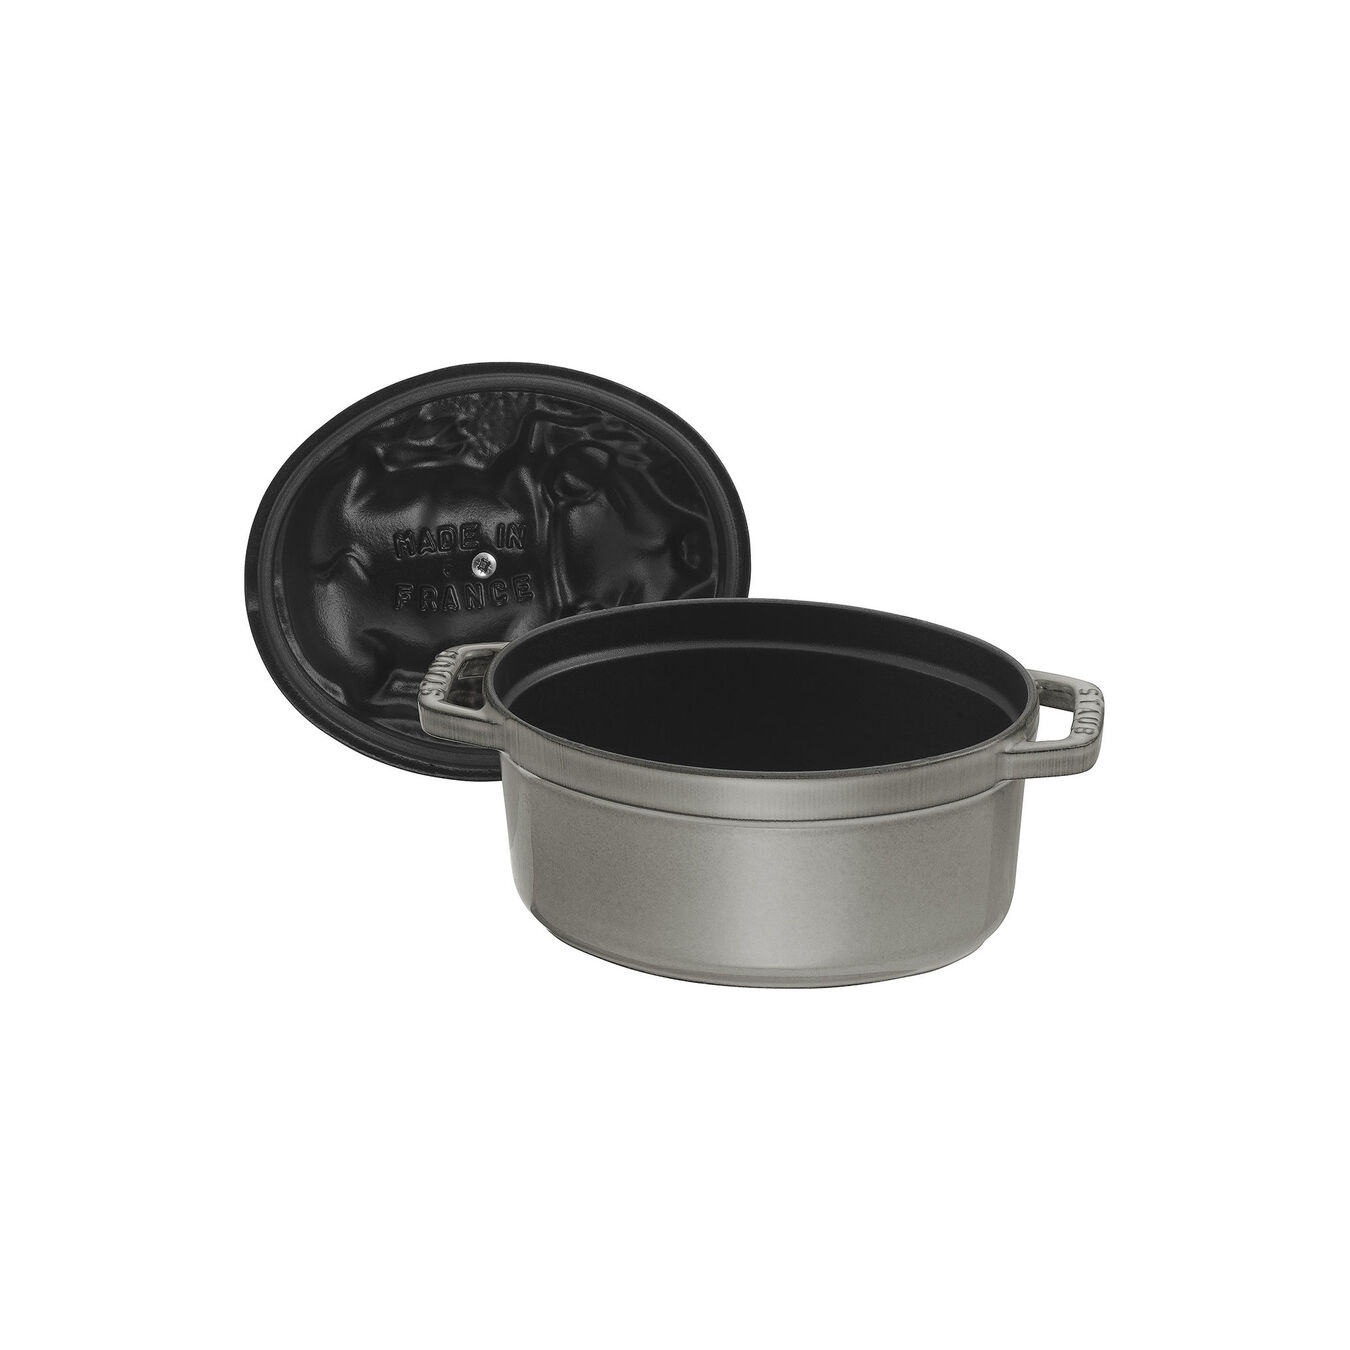 Cocotte 17 cm, oval, Graphit-Grau, Gusseisen,,large 6